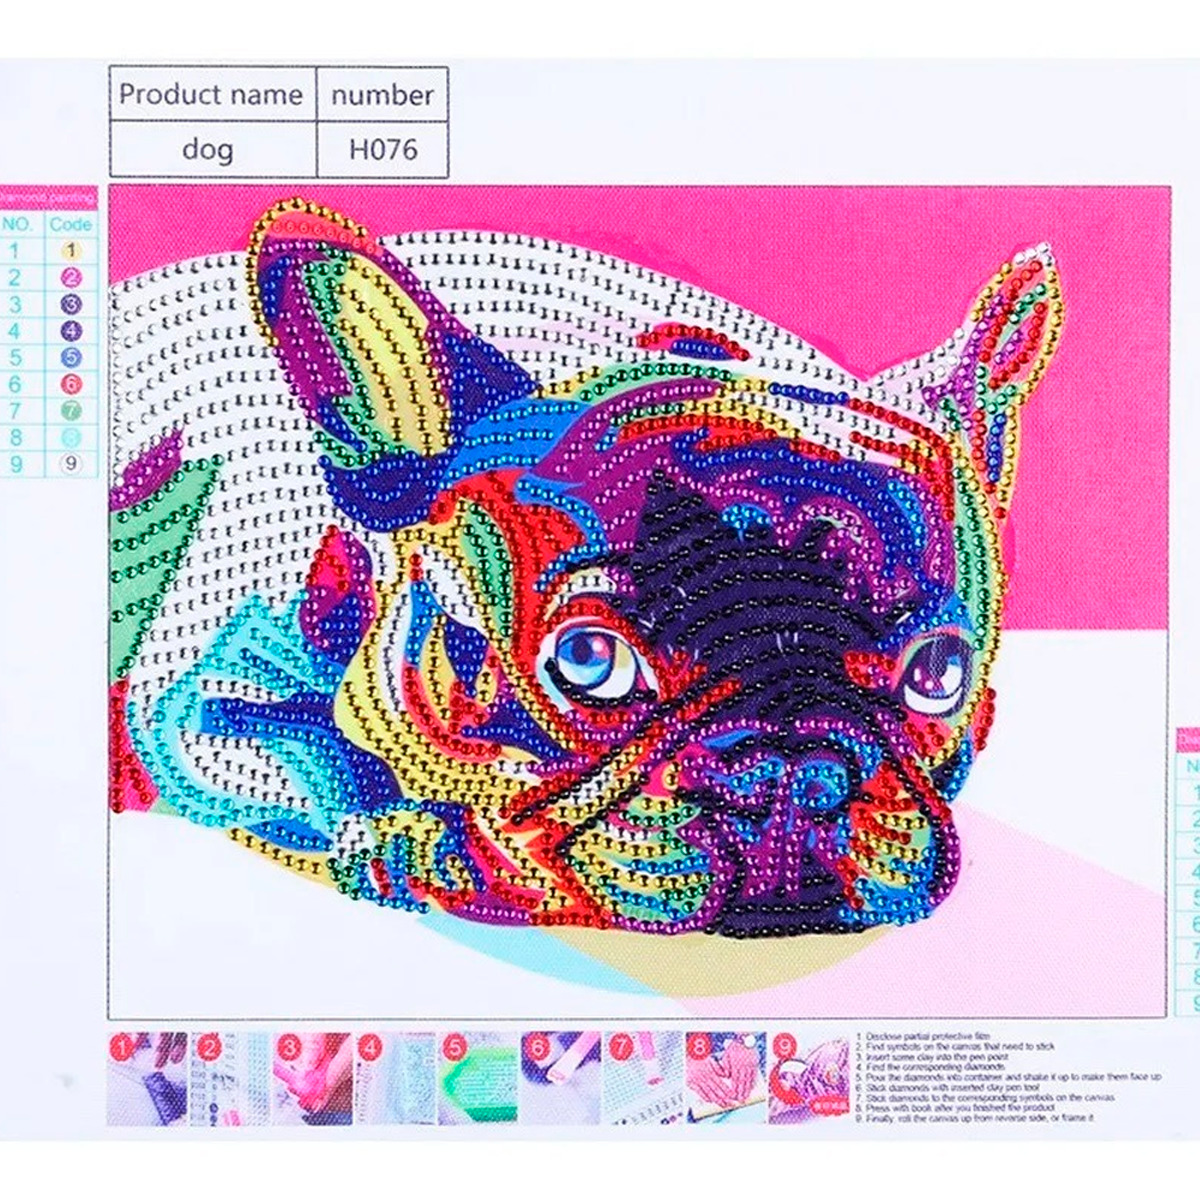 Diamond Painting 5D Kits Broca Diamante 25 X 30 Cm